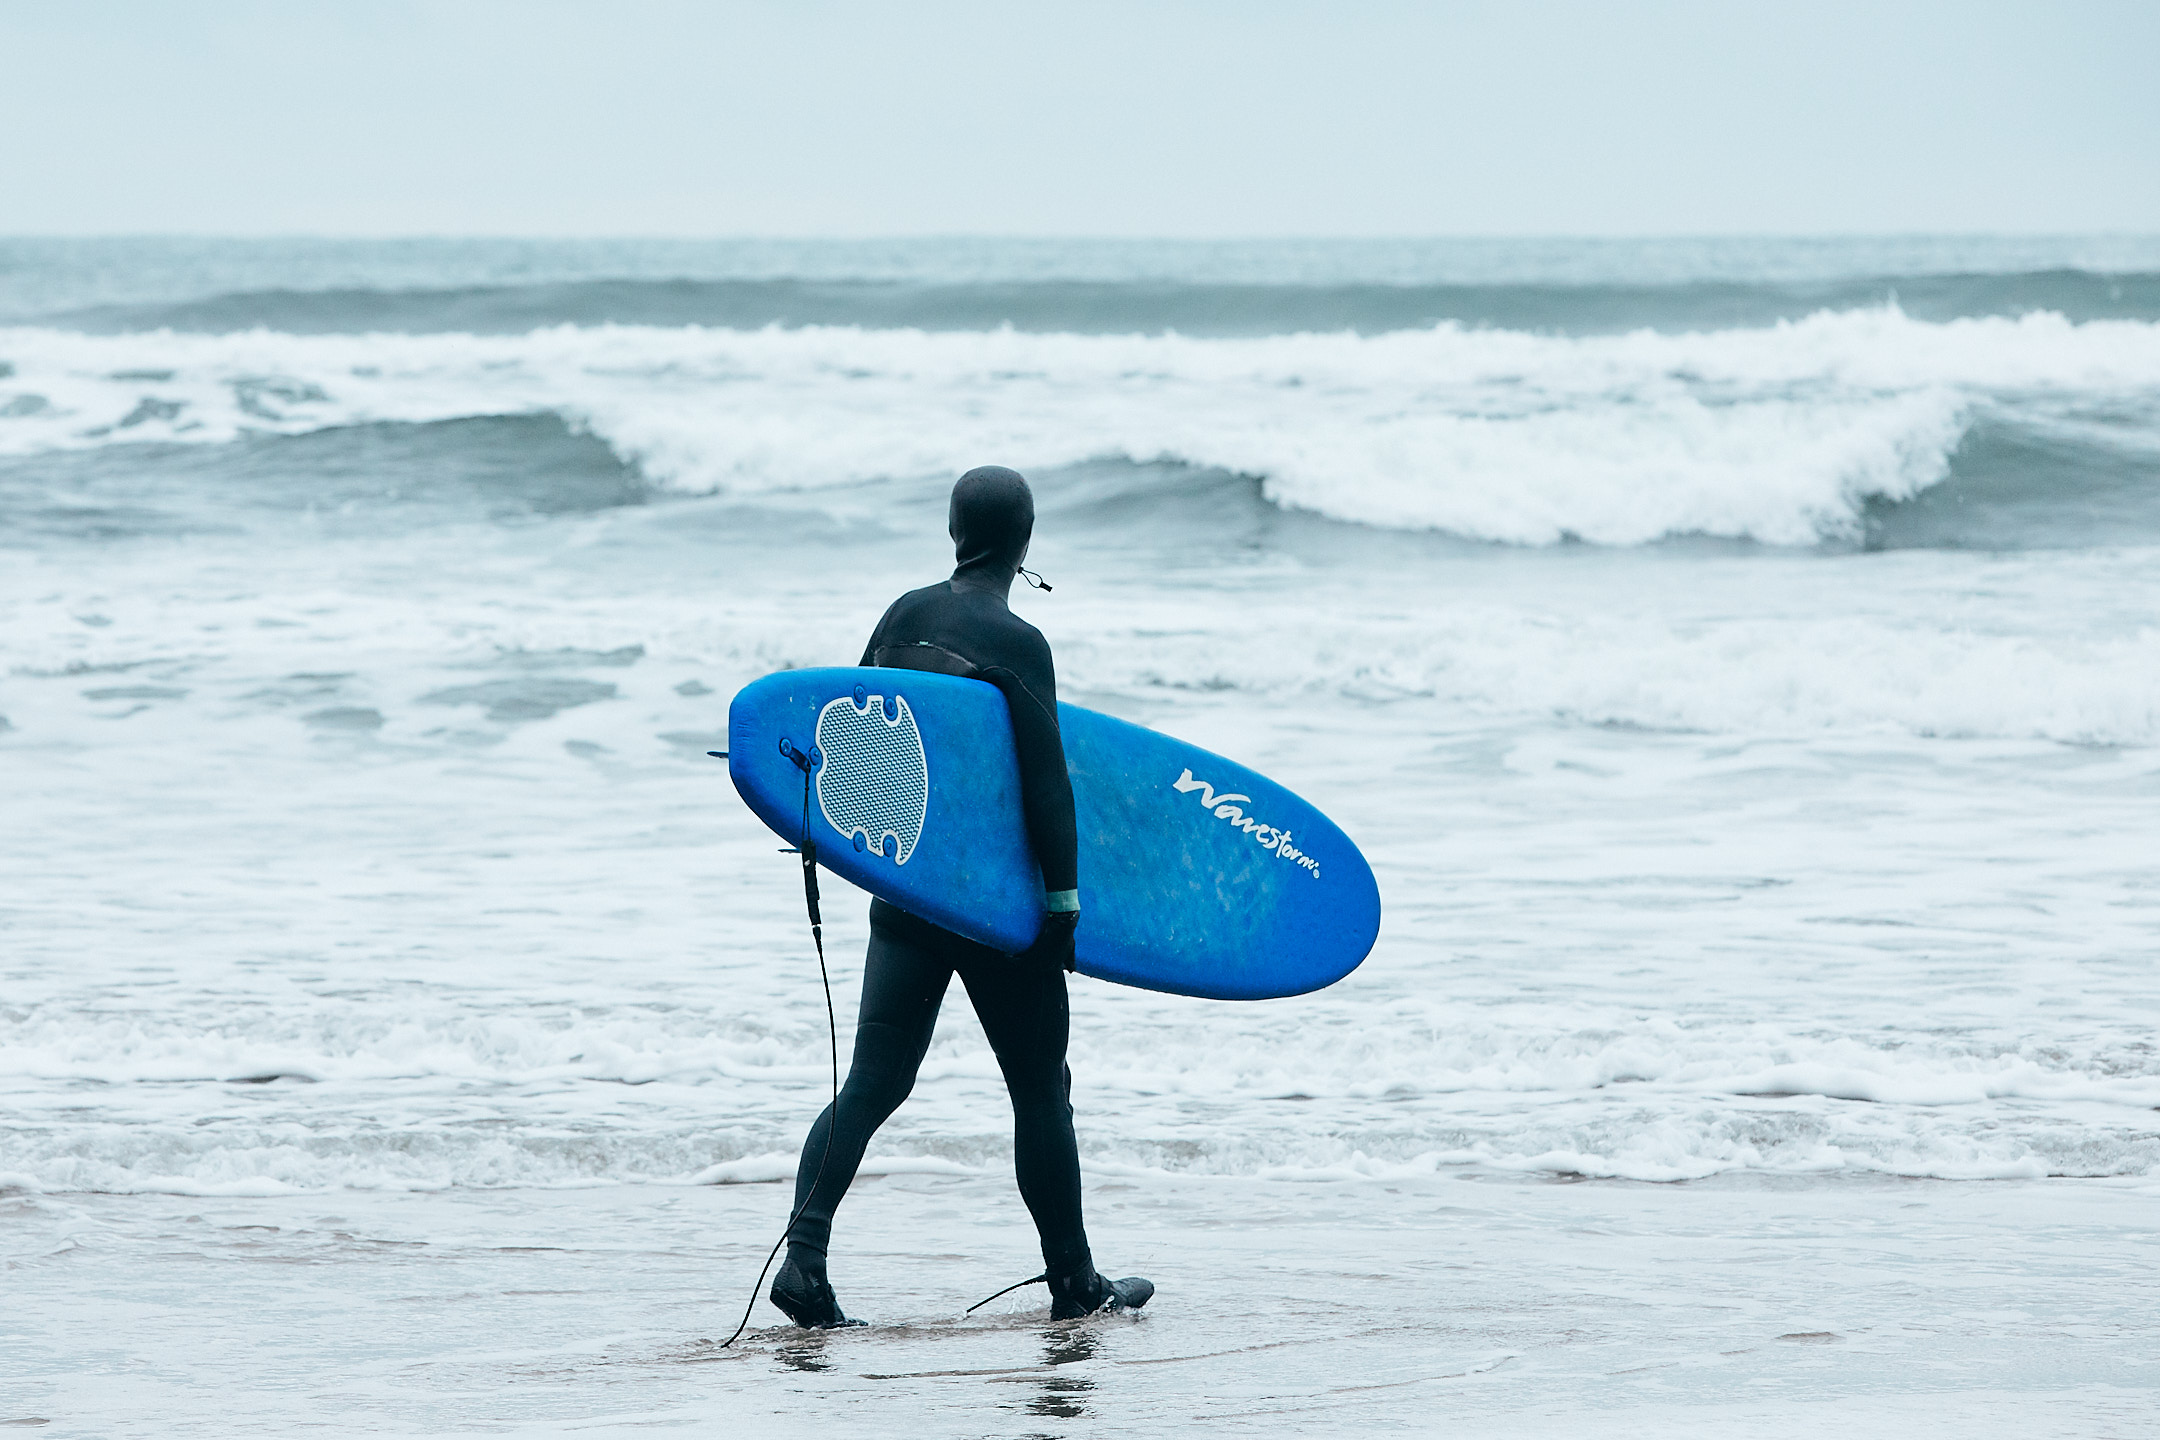 OR_Surf_1171